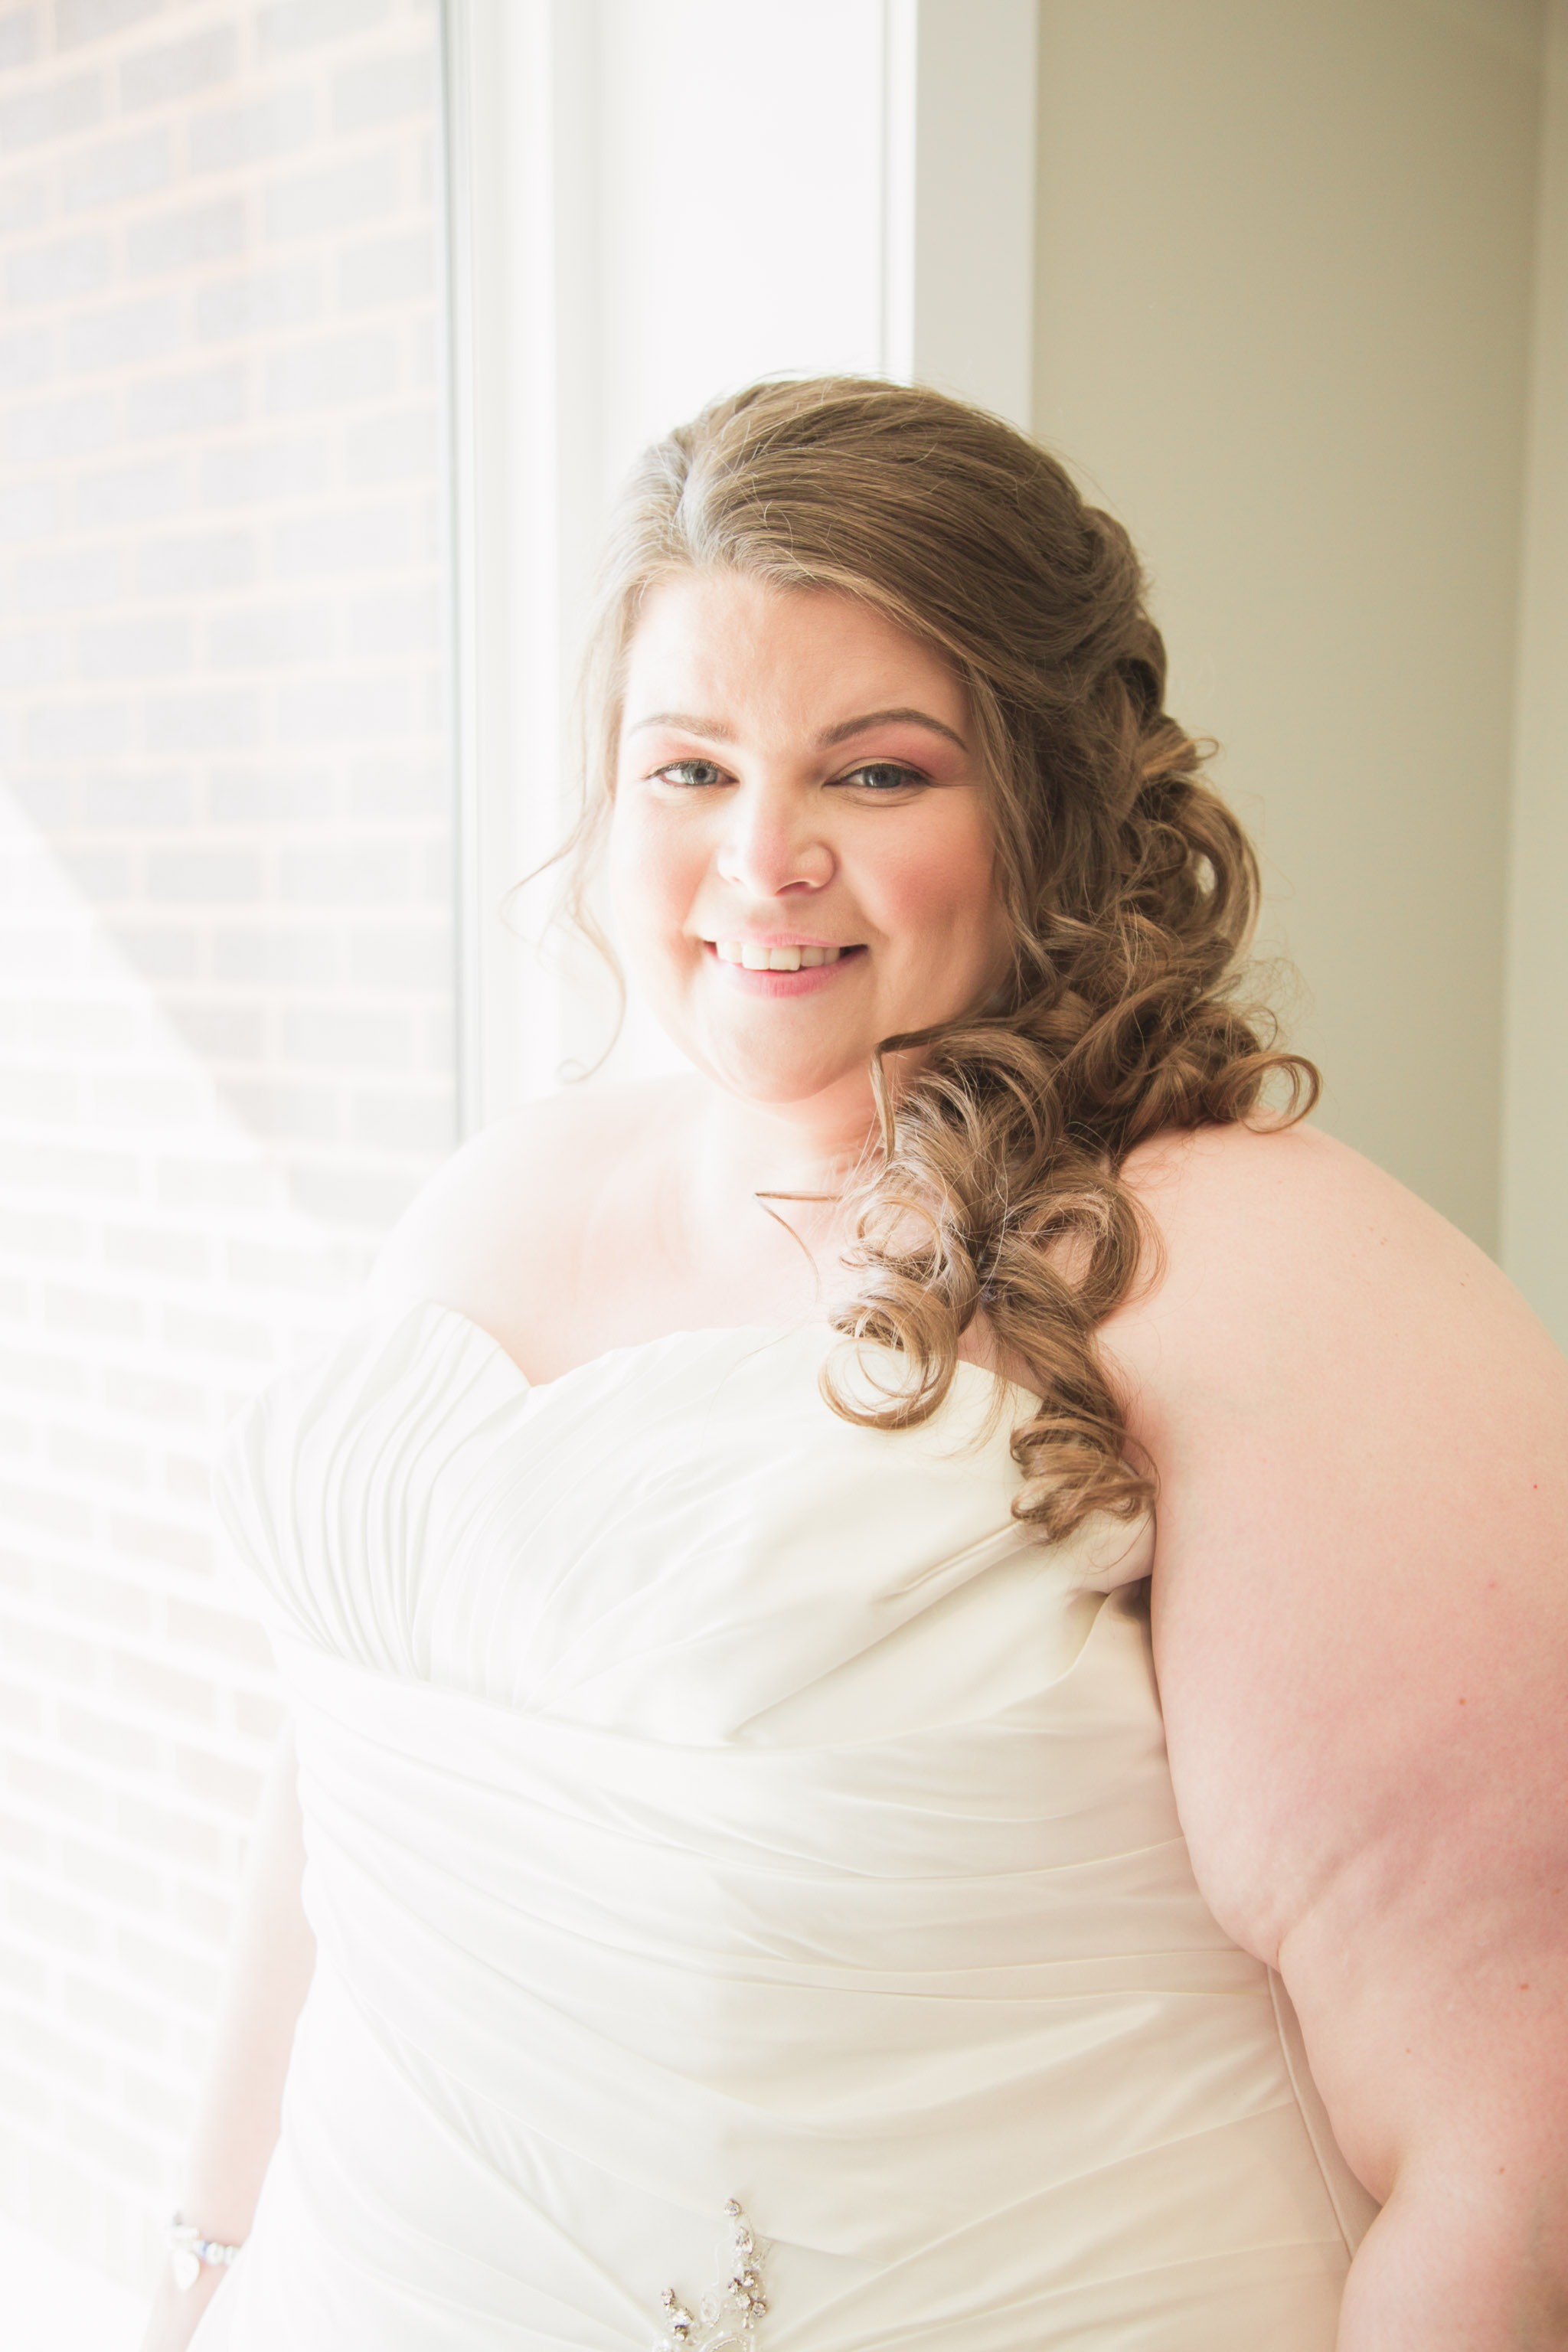 Image of the bride smiling